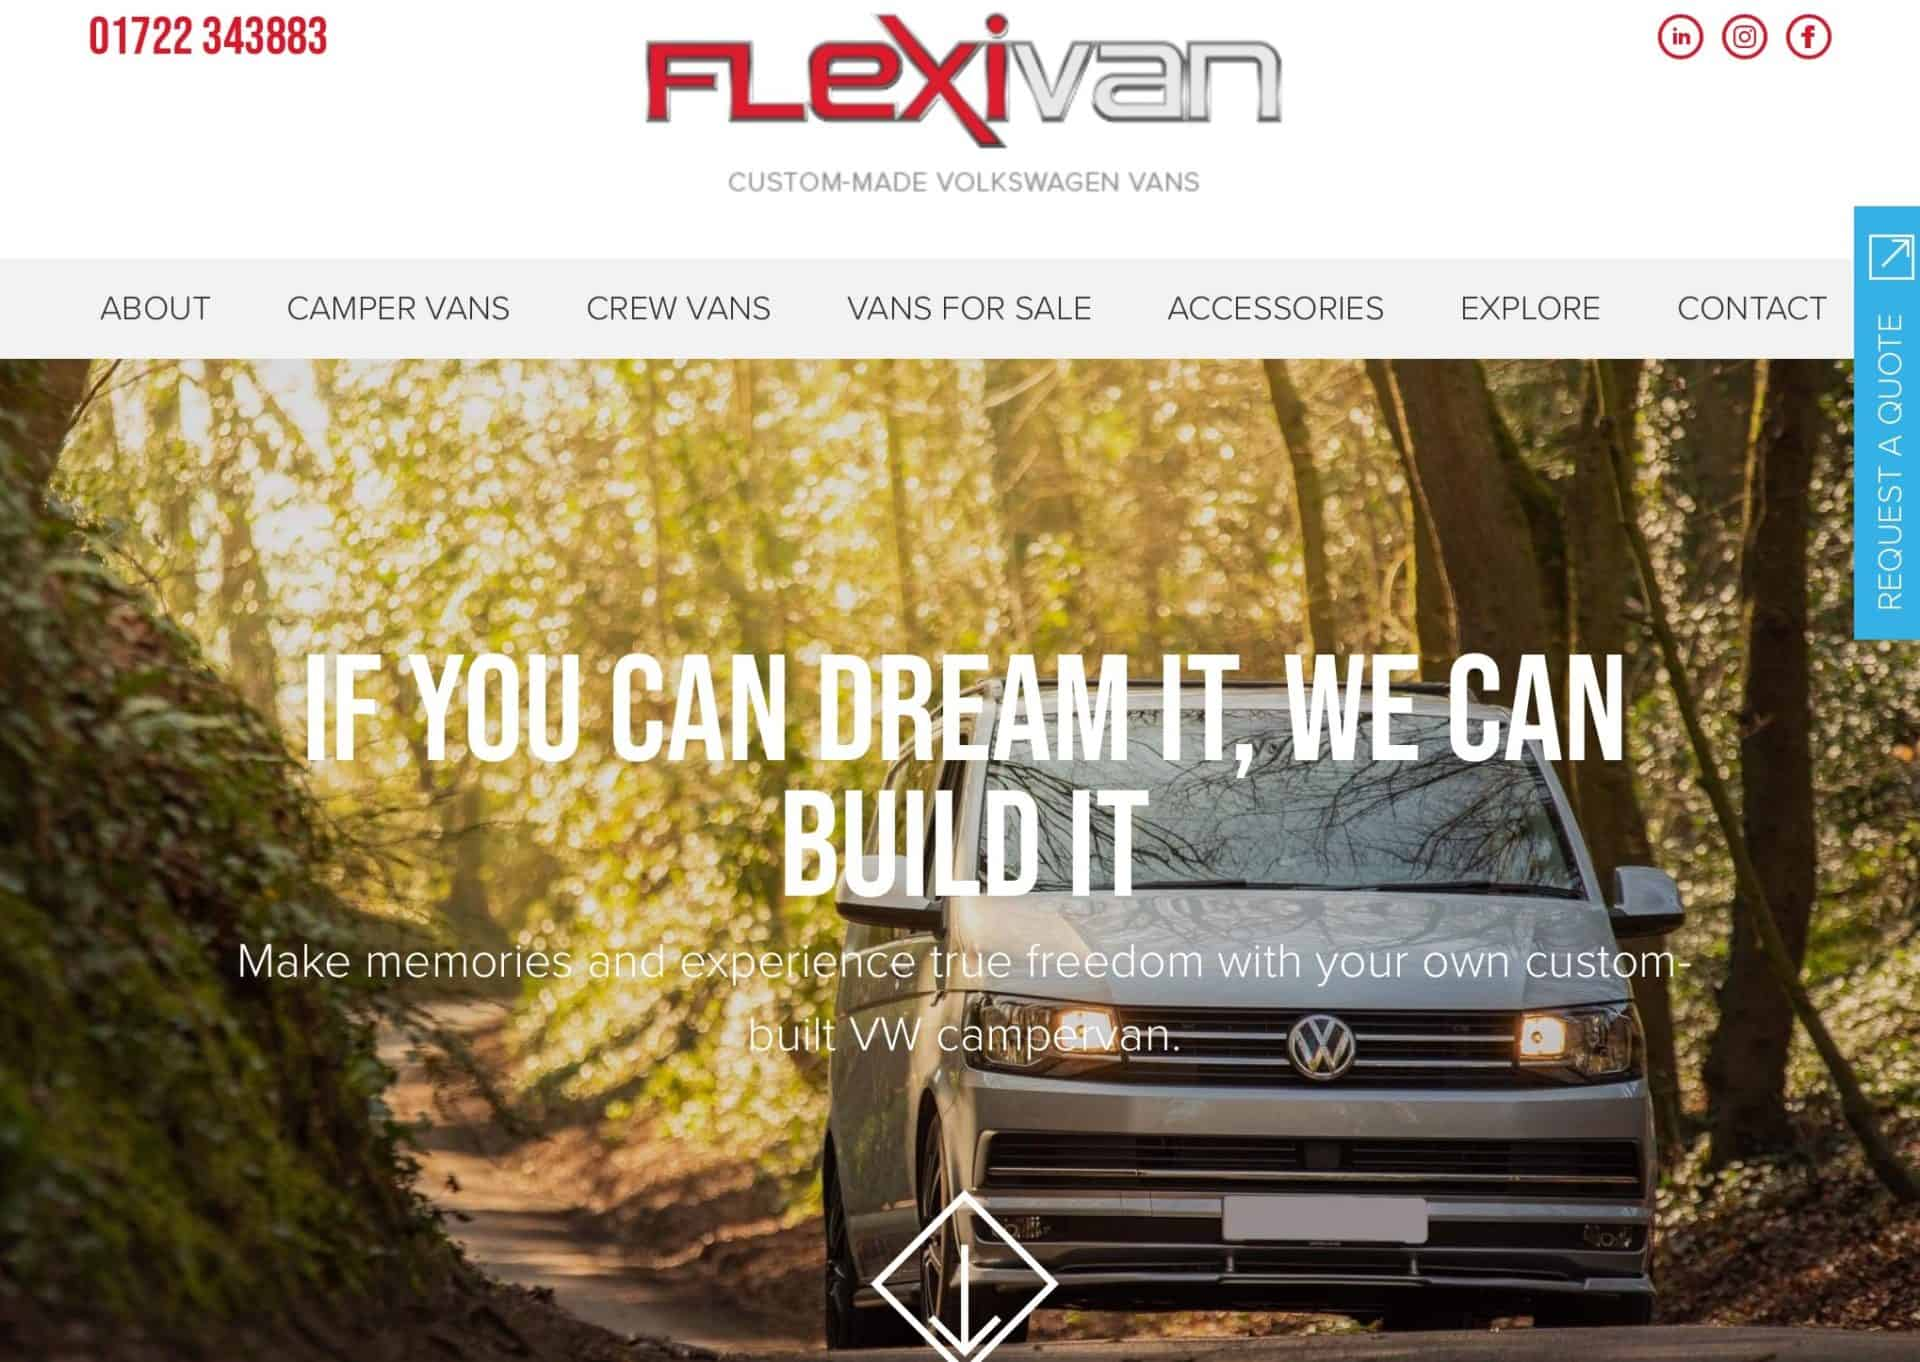 web design homepage flexivan 1b